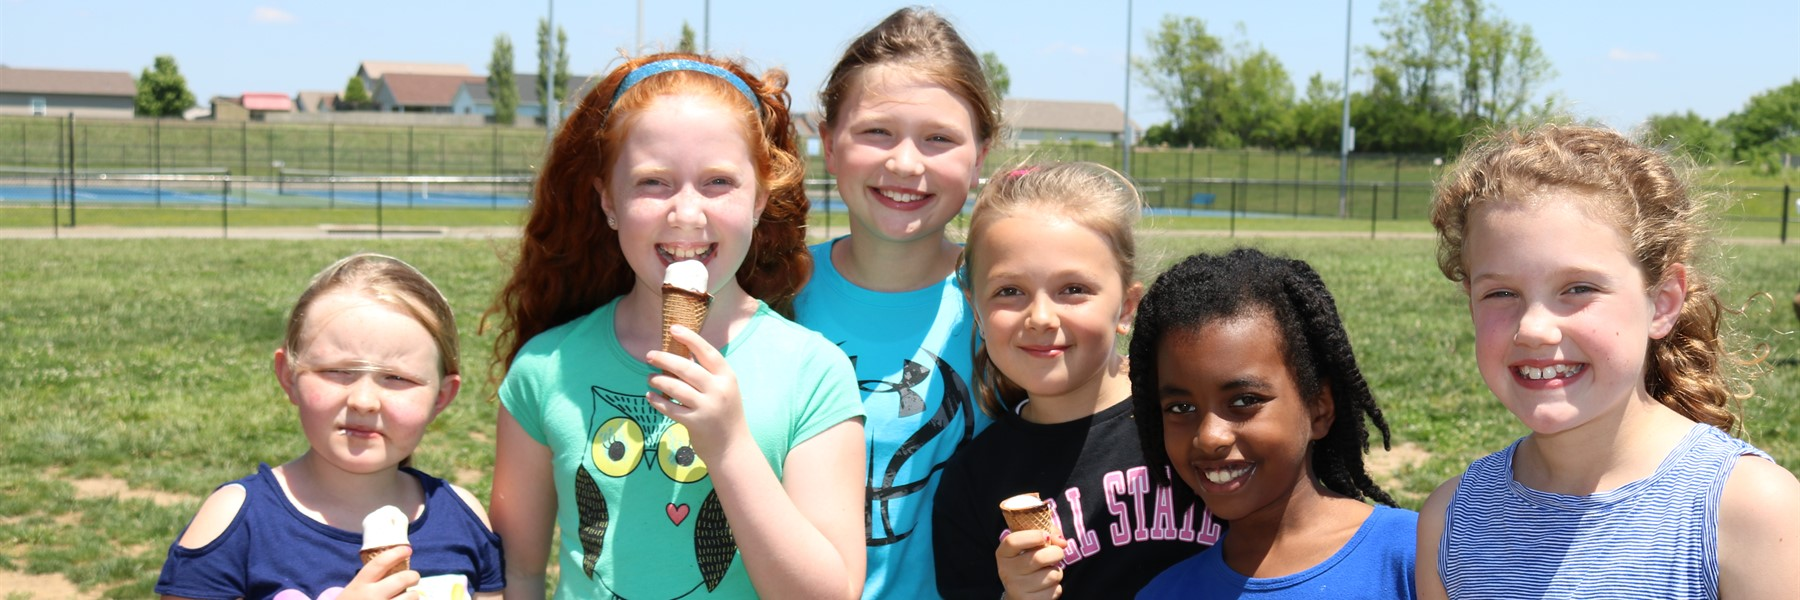 Attendance challenge champs celebrate with ice cream